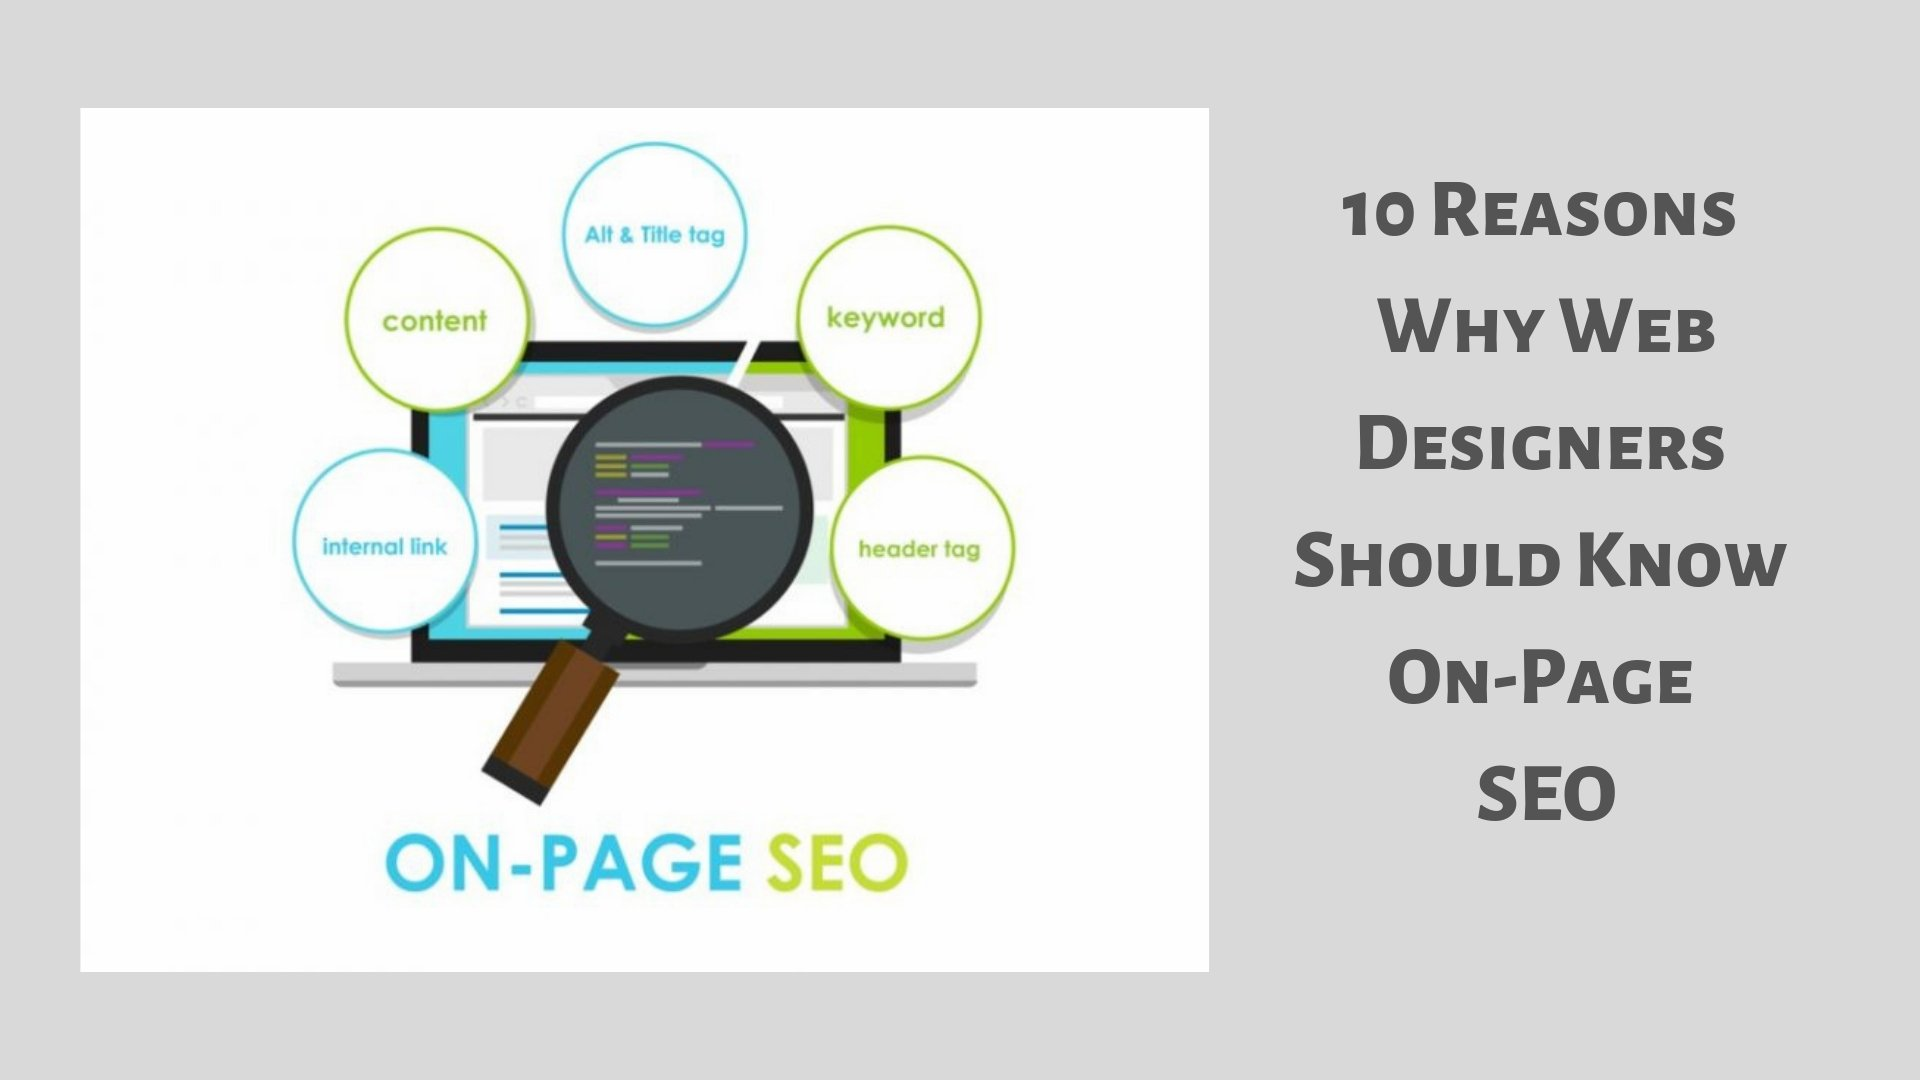 Web Designers Should Know On-Page SEO